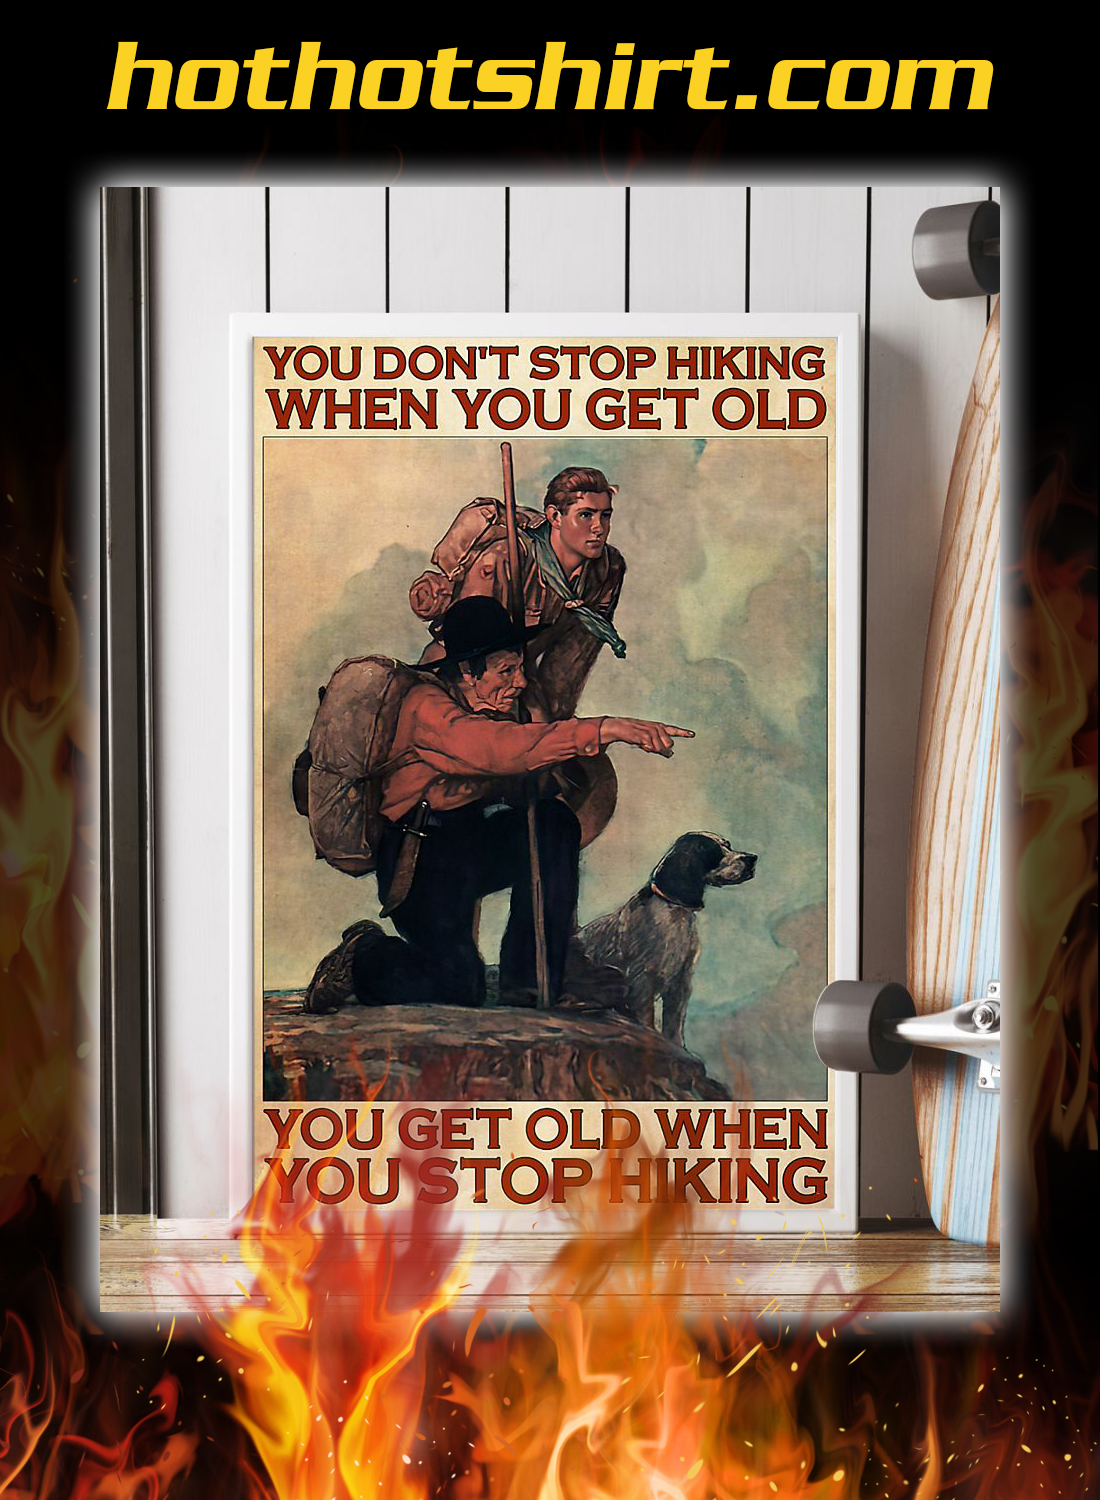 You don't stop hiking when you get old poster 1